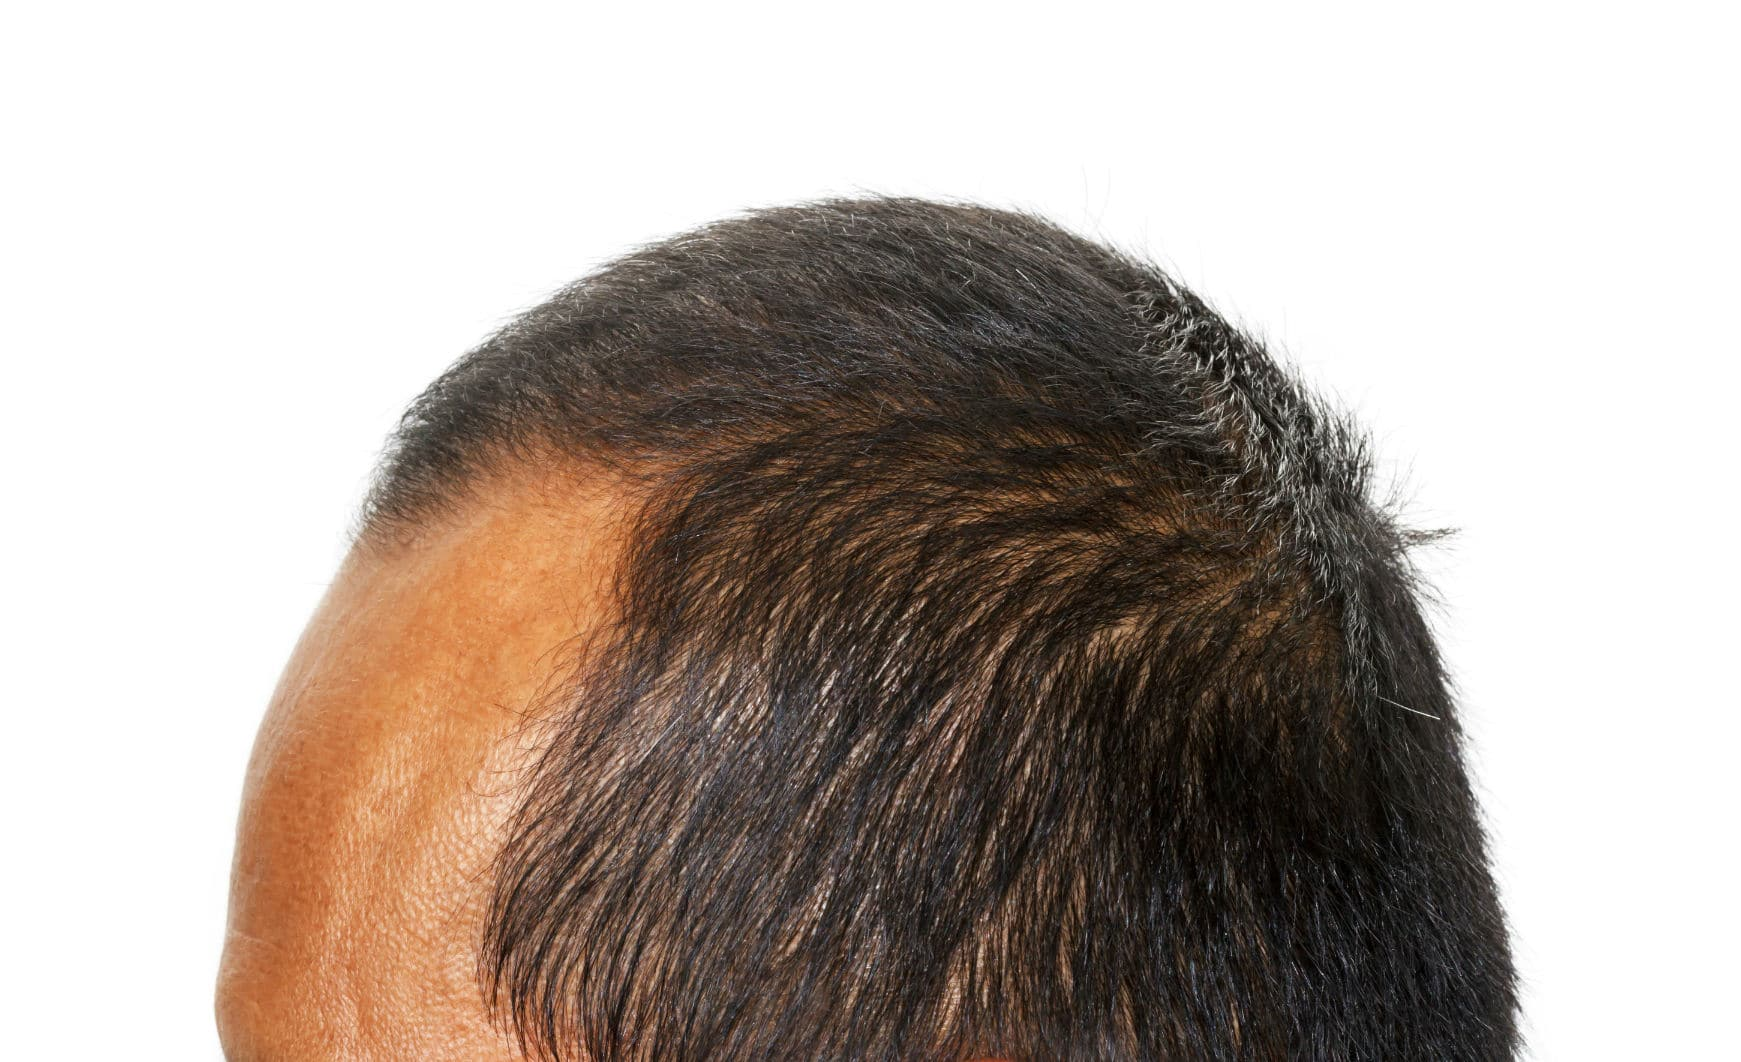 Widows Peak Treatment - How to Get Rid of a Thinning Hairline